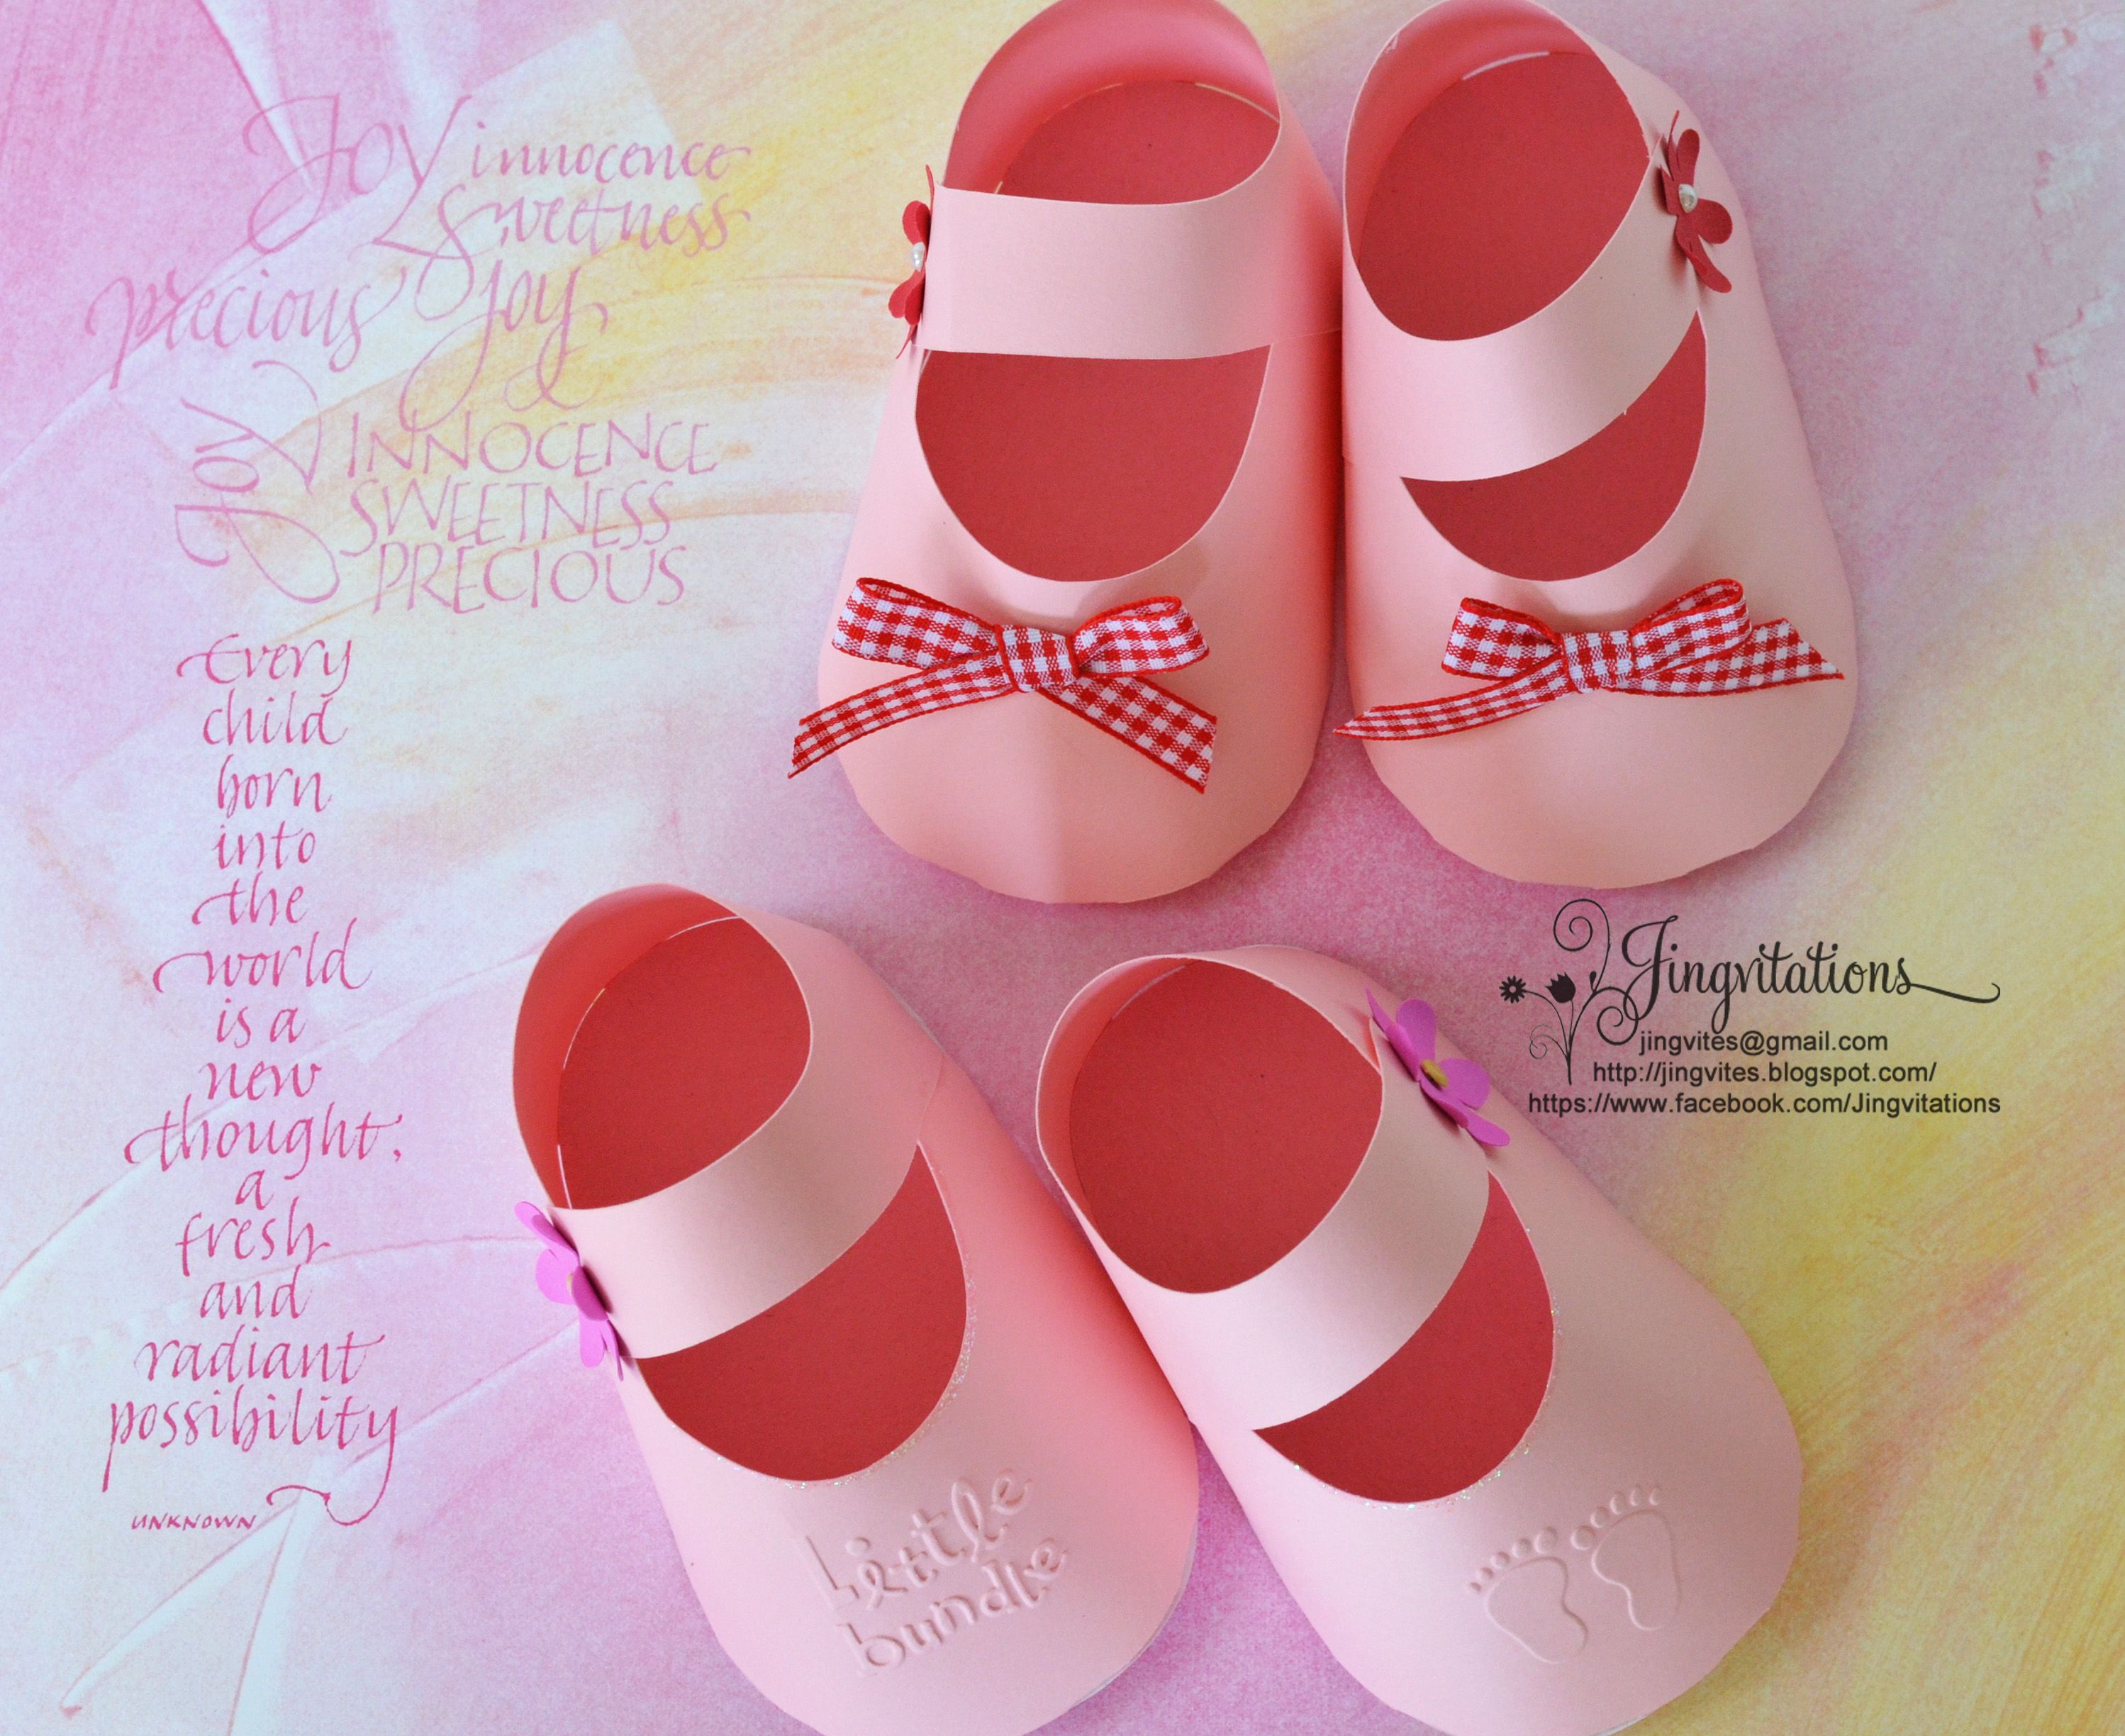 3D Invitations: Very Unique Baby Shoe Invites for Baby Shower ...